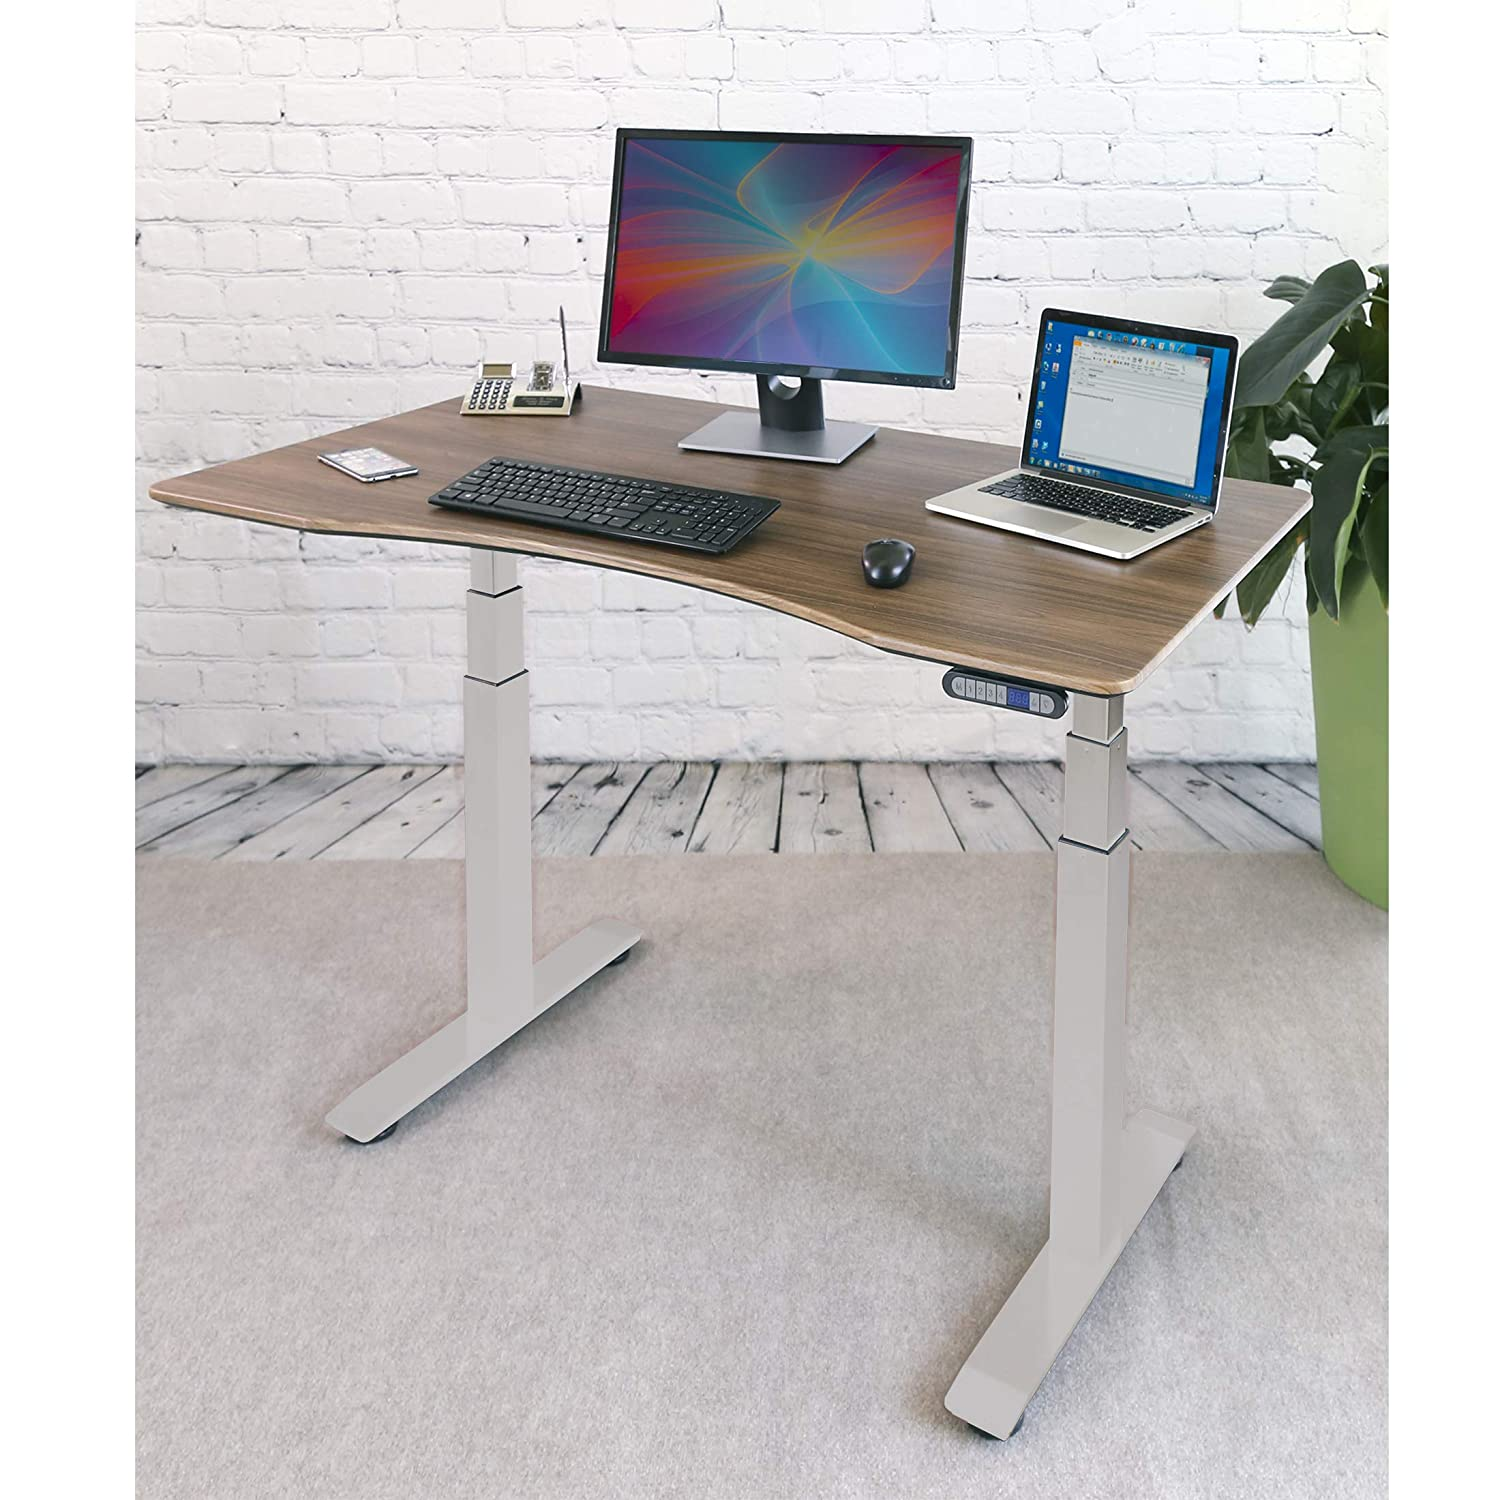 48L x 24W x 65.5H Inches Stainless Steel UHD20247B UltraHD Lighted Workbench Seville Classics